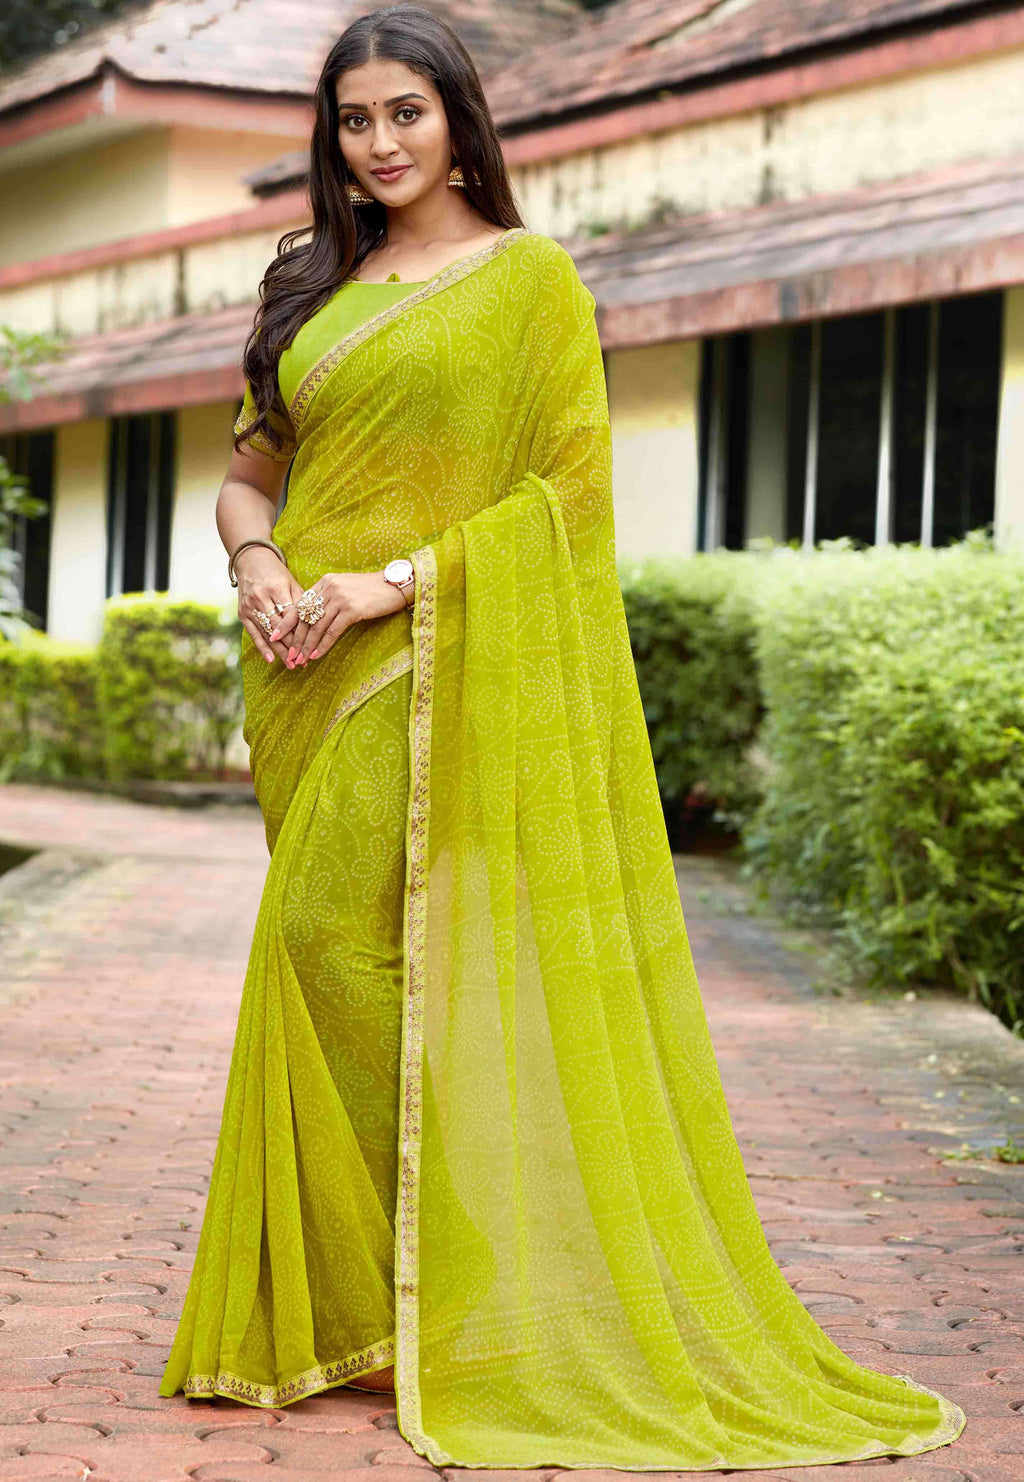 Parrot Green Color Georgette Printed Party Wear Sarees NYF-9339